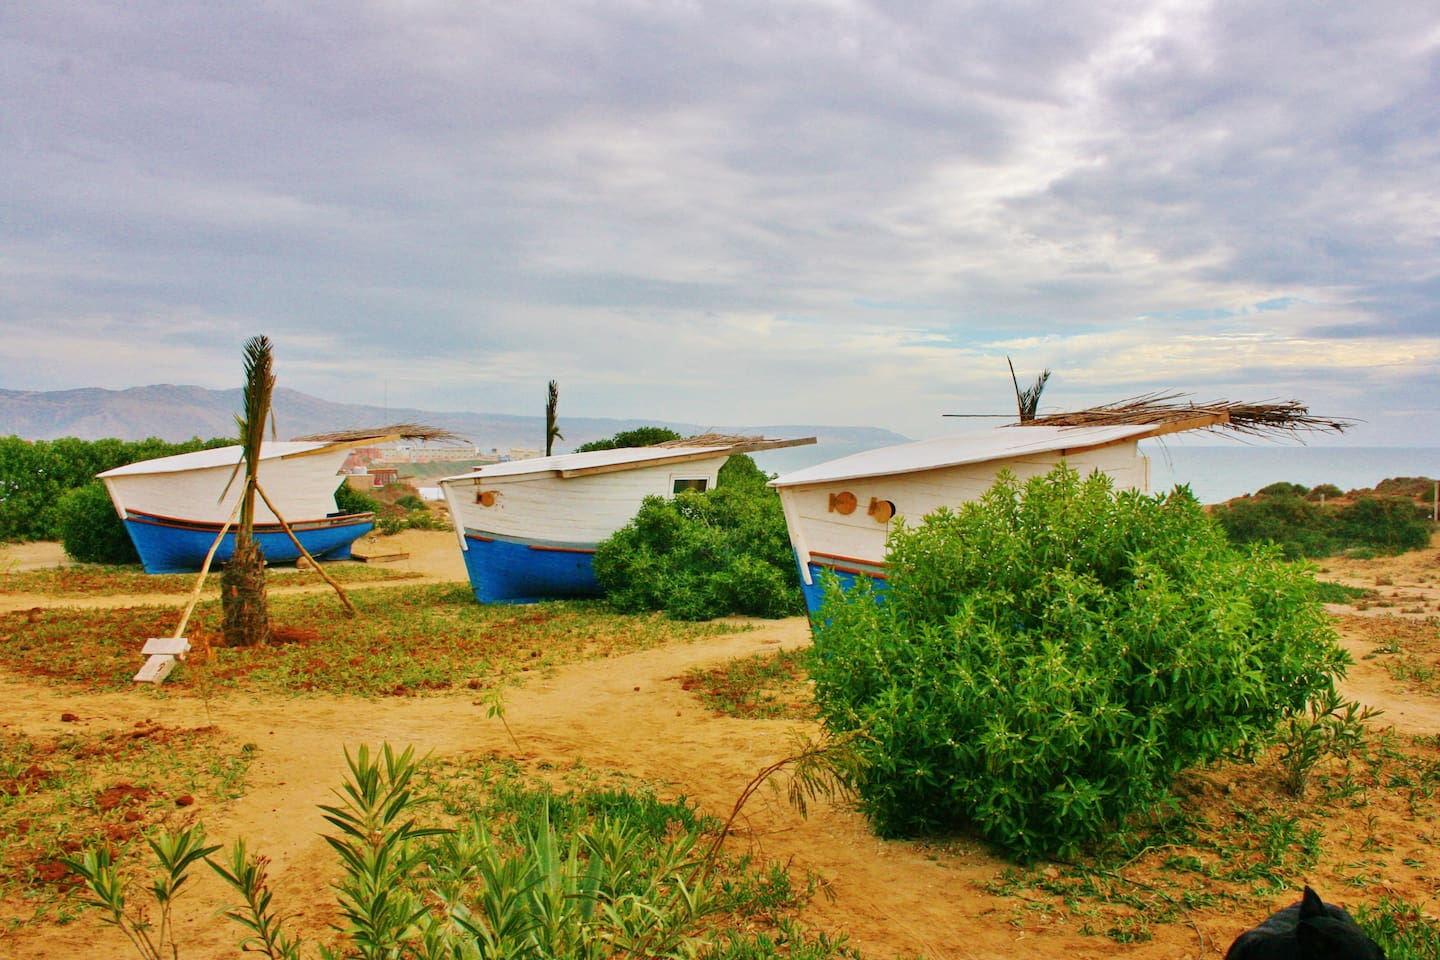 Ocean Front PODS made from traditional fishing boats.